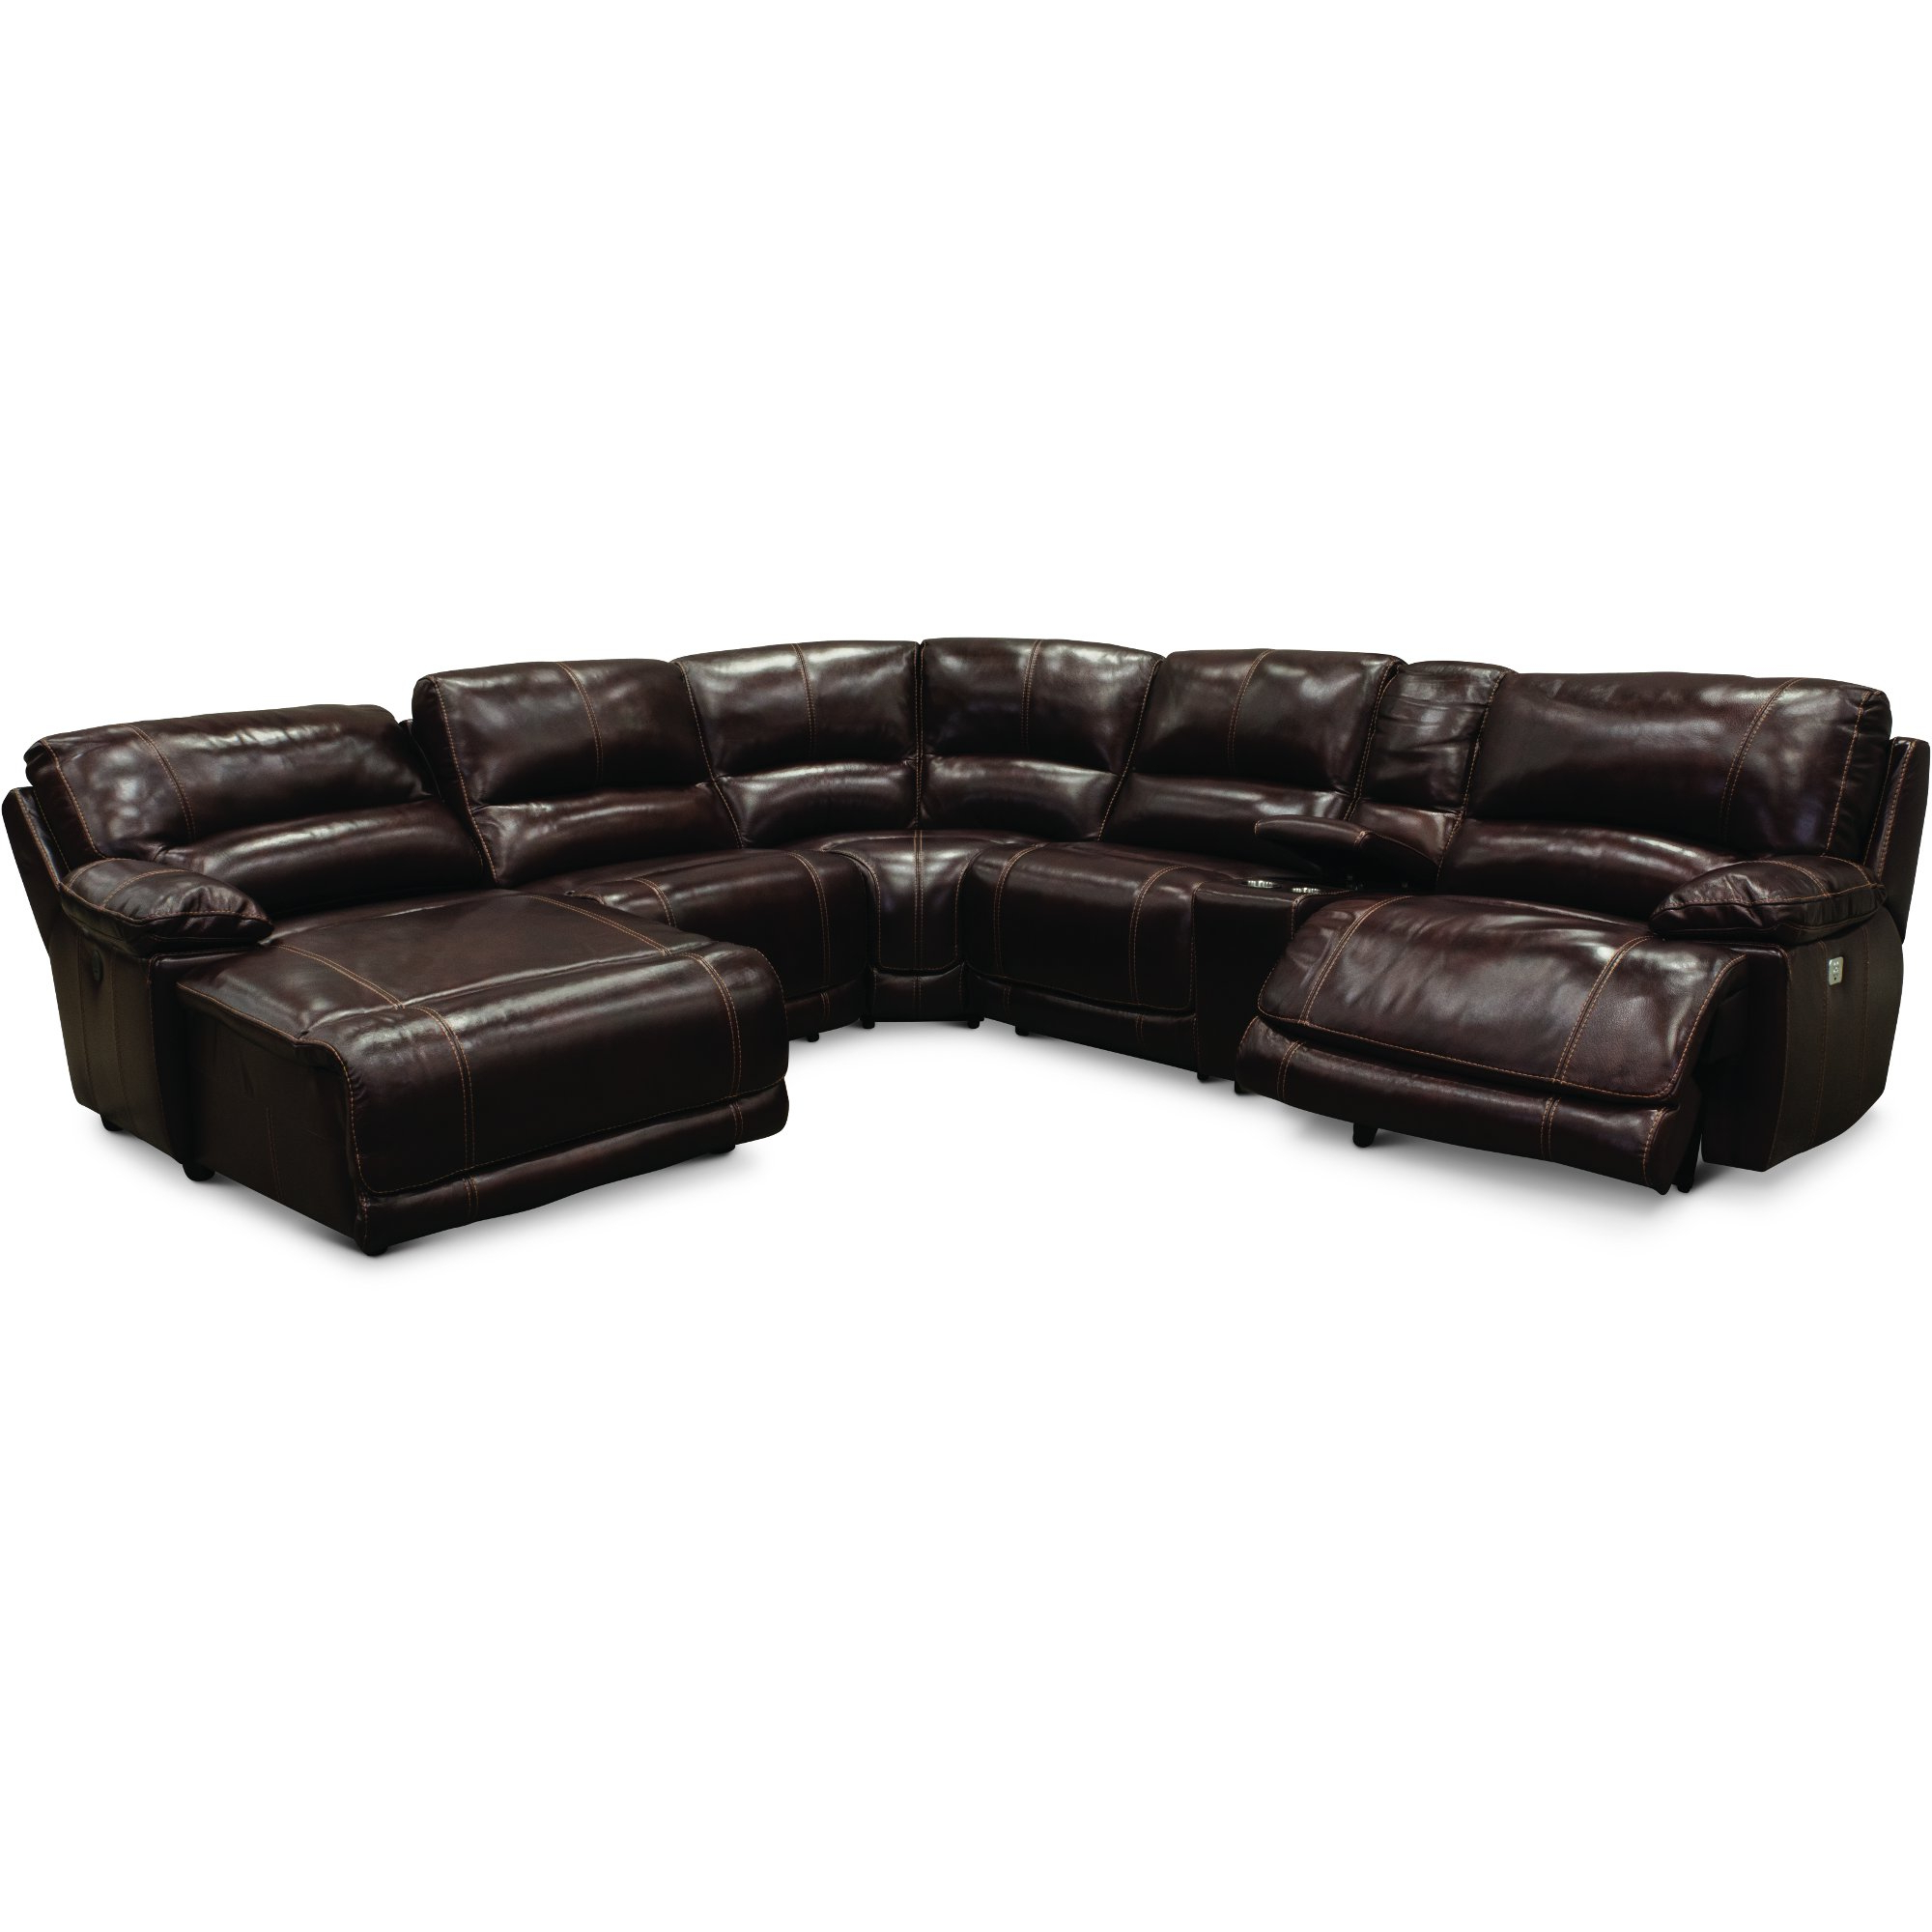 Rc Intended For Most Popular Jackson 6 Piece Power Reclining Sectionals (View 3 of 20)